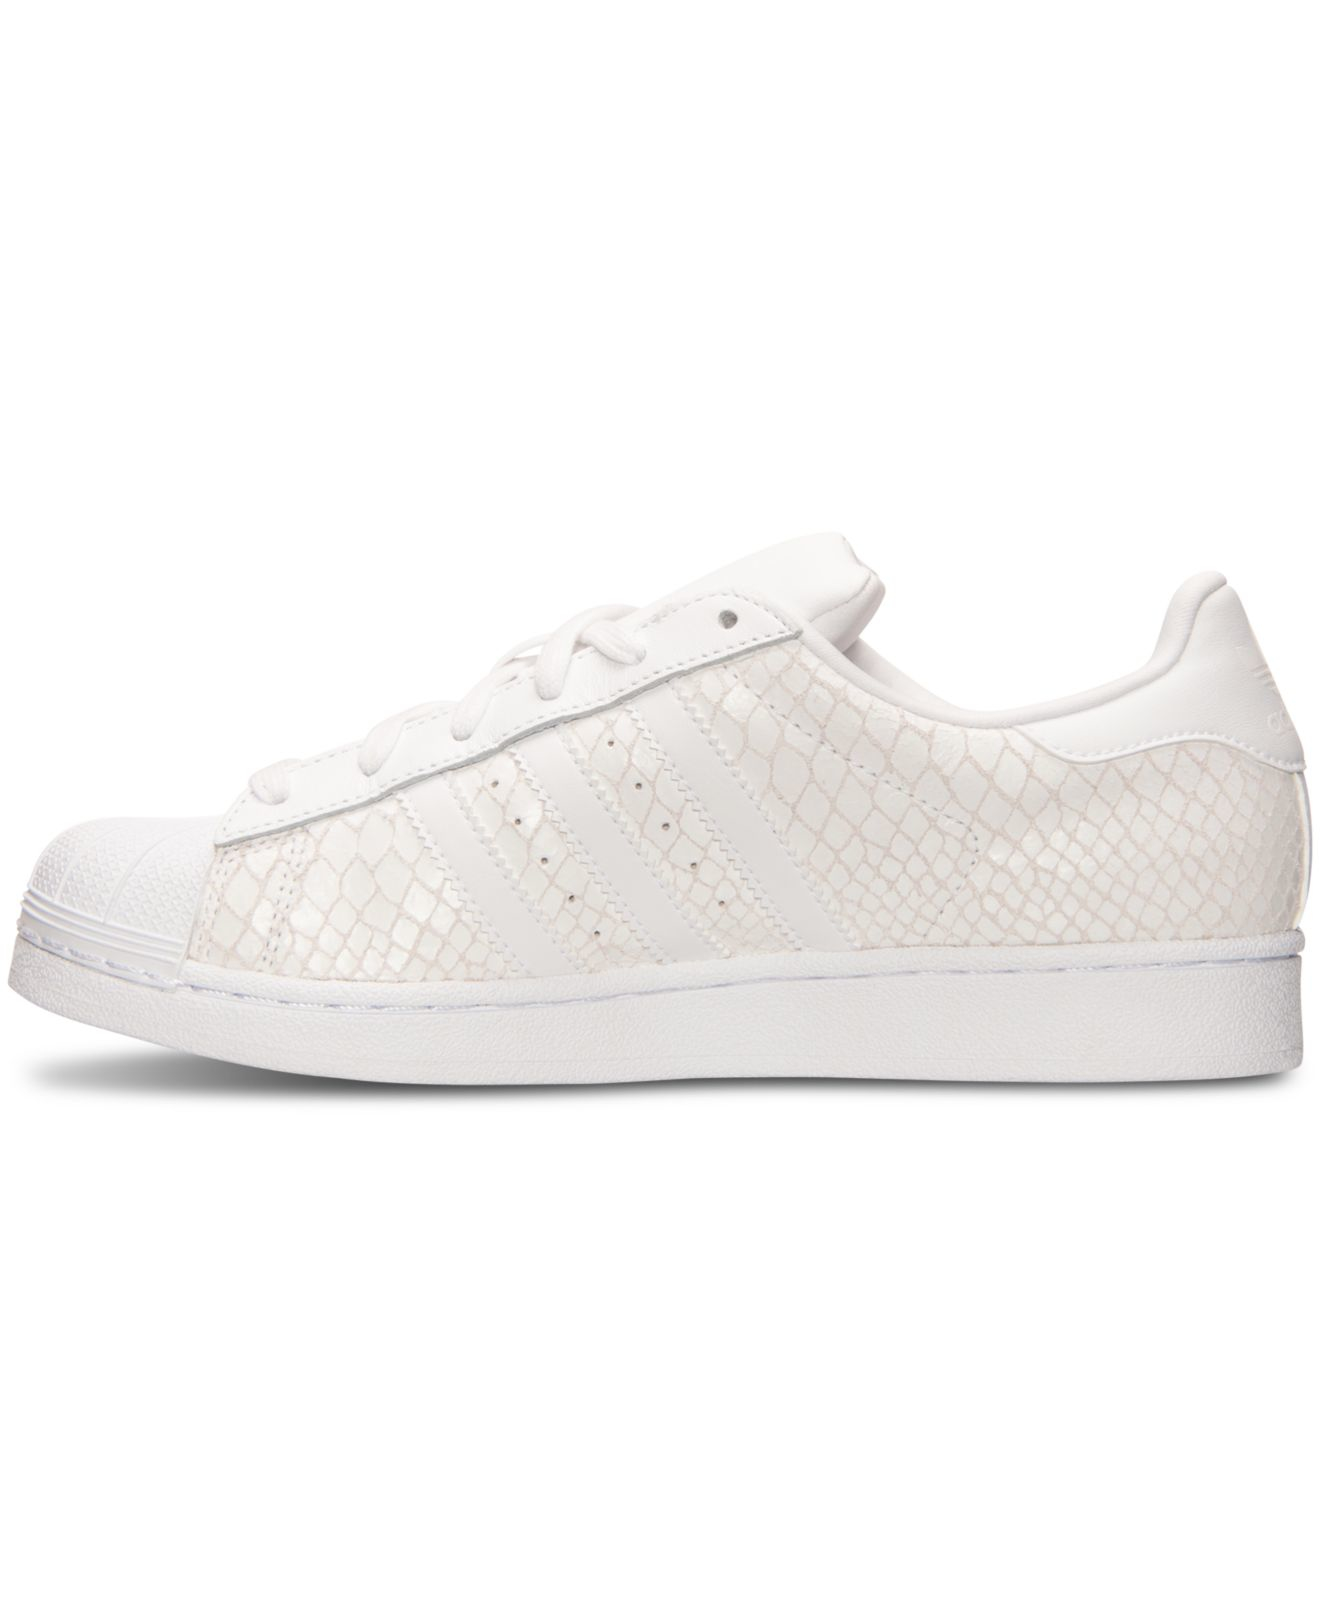 78ad000d5 Lyst - adidas Originals Women s Superstar Casual Sneakers From ...